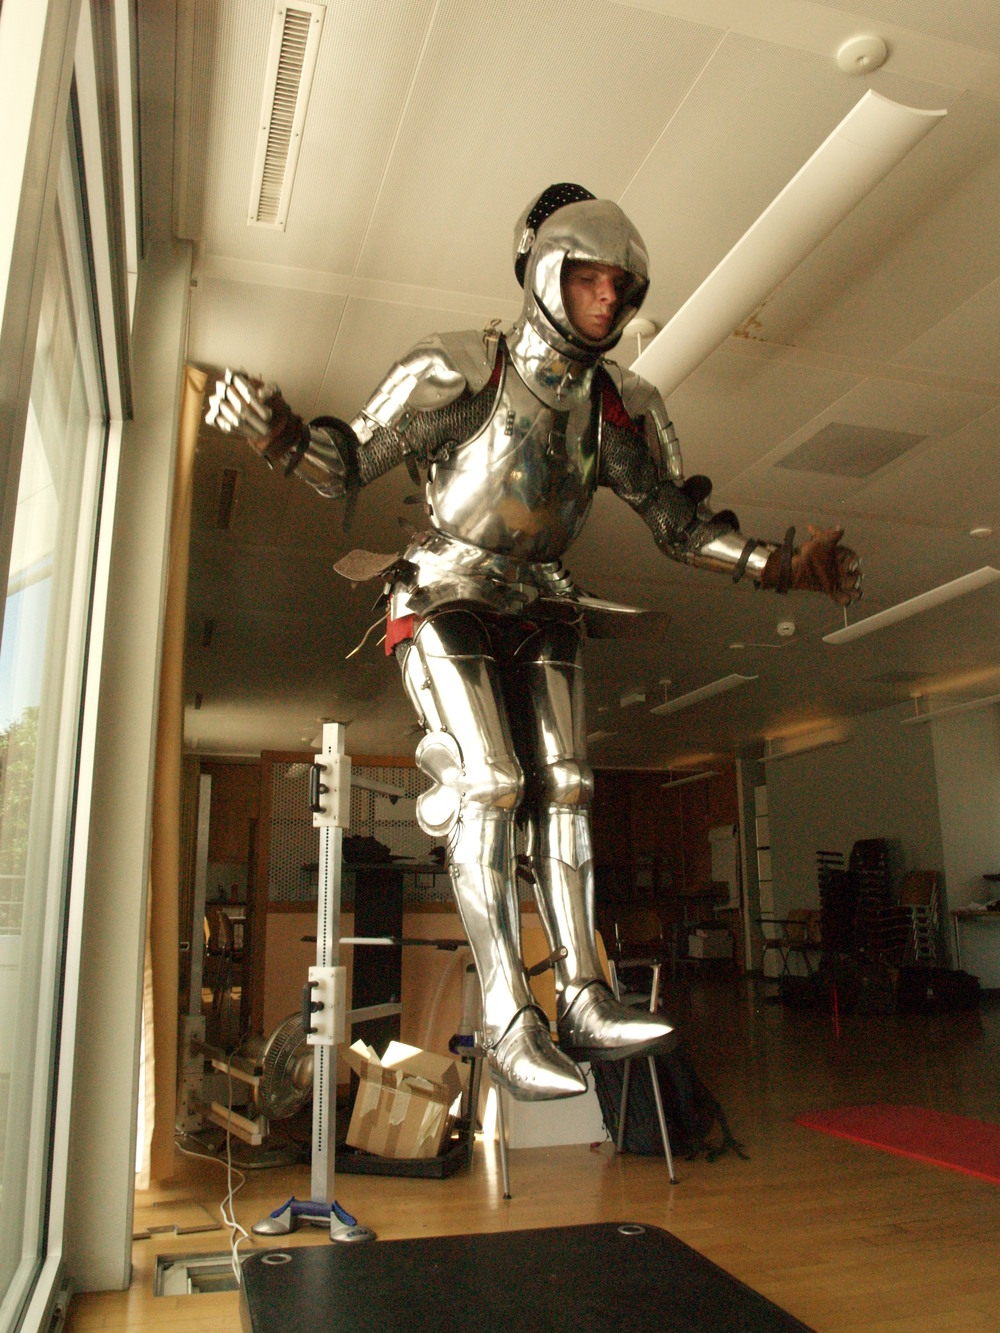 Trial test for measuring energy expenditure while carrying armour (jumping on a force platform). Photo EJ (2011).